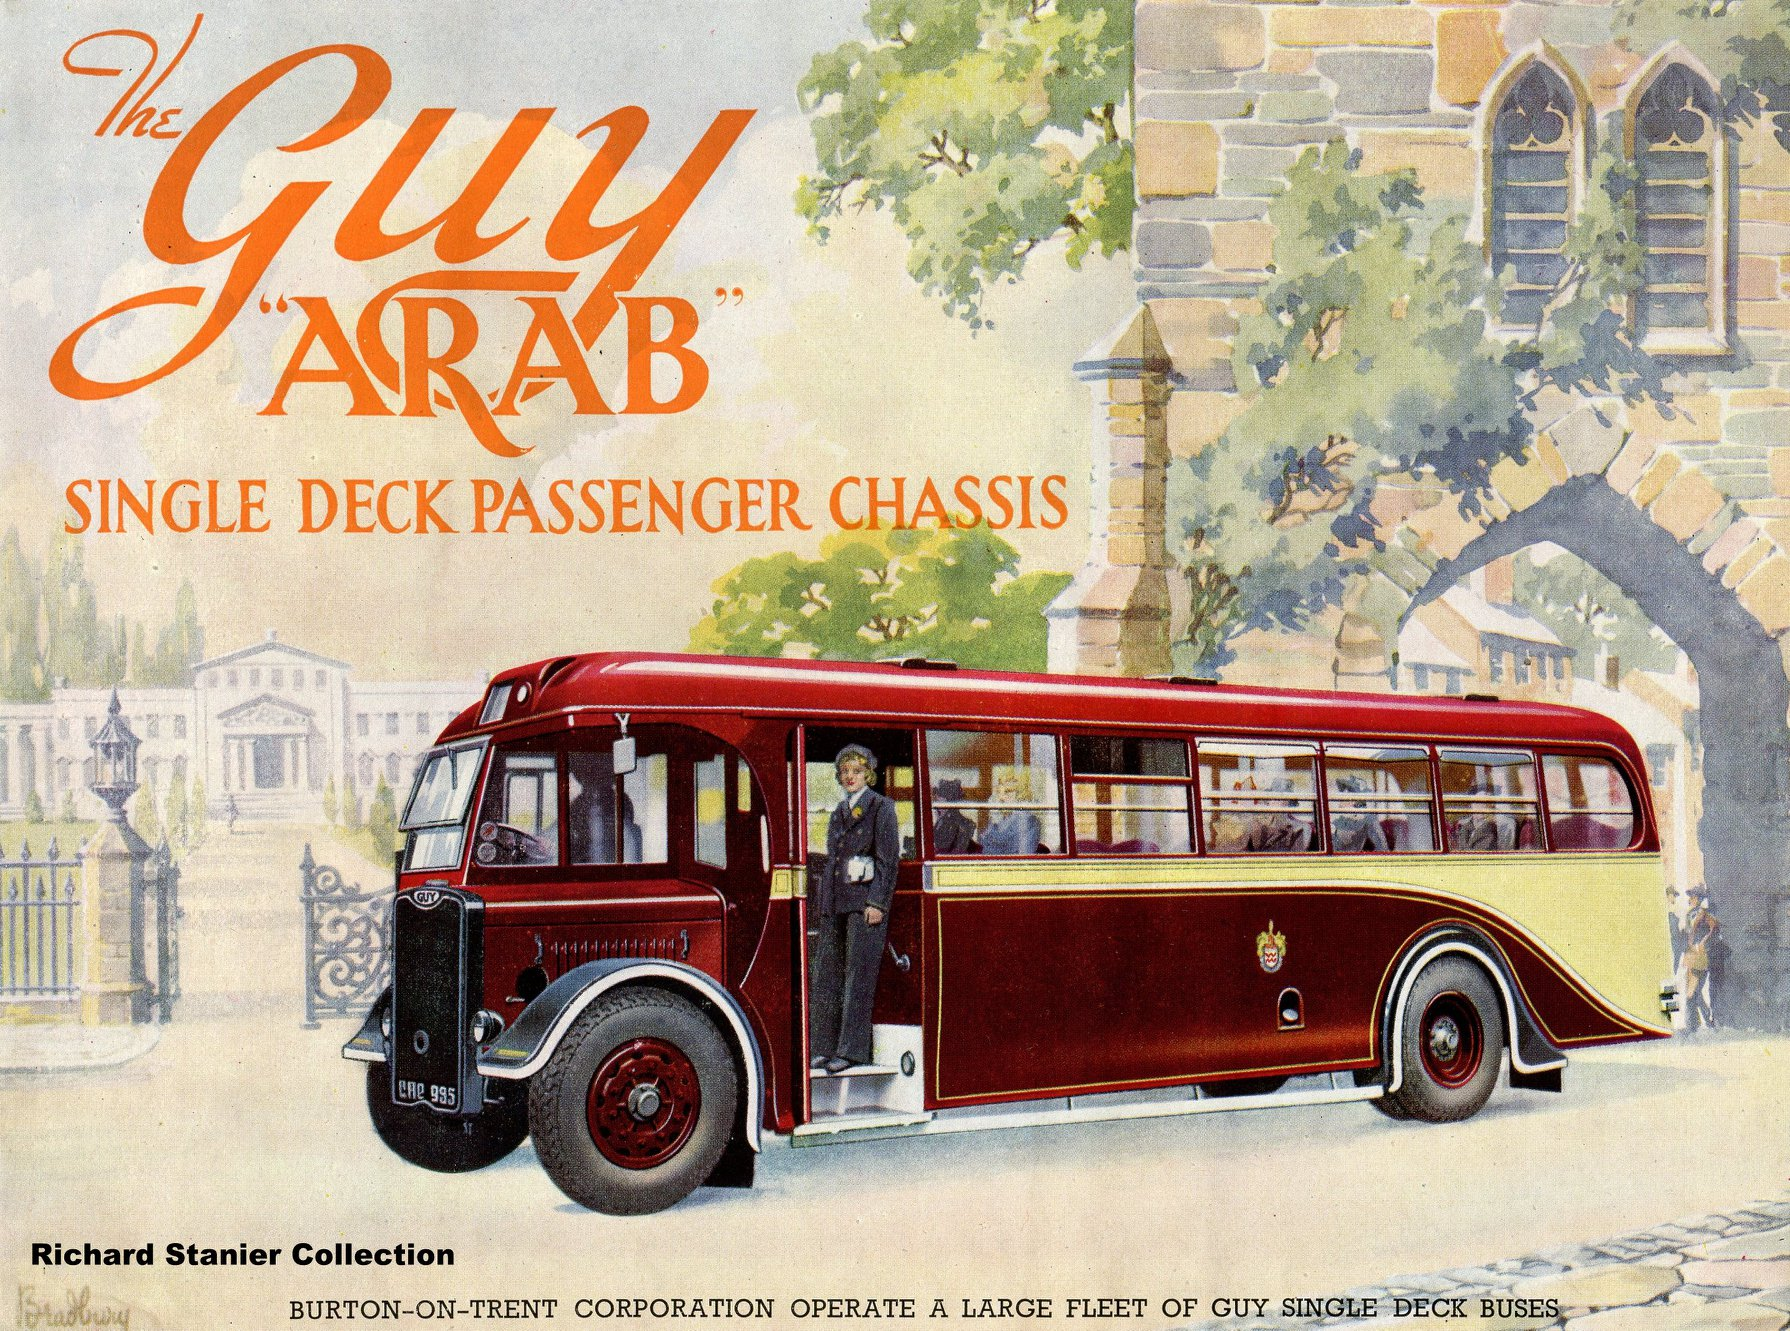 Guy-arabische-single-deck-bus